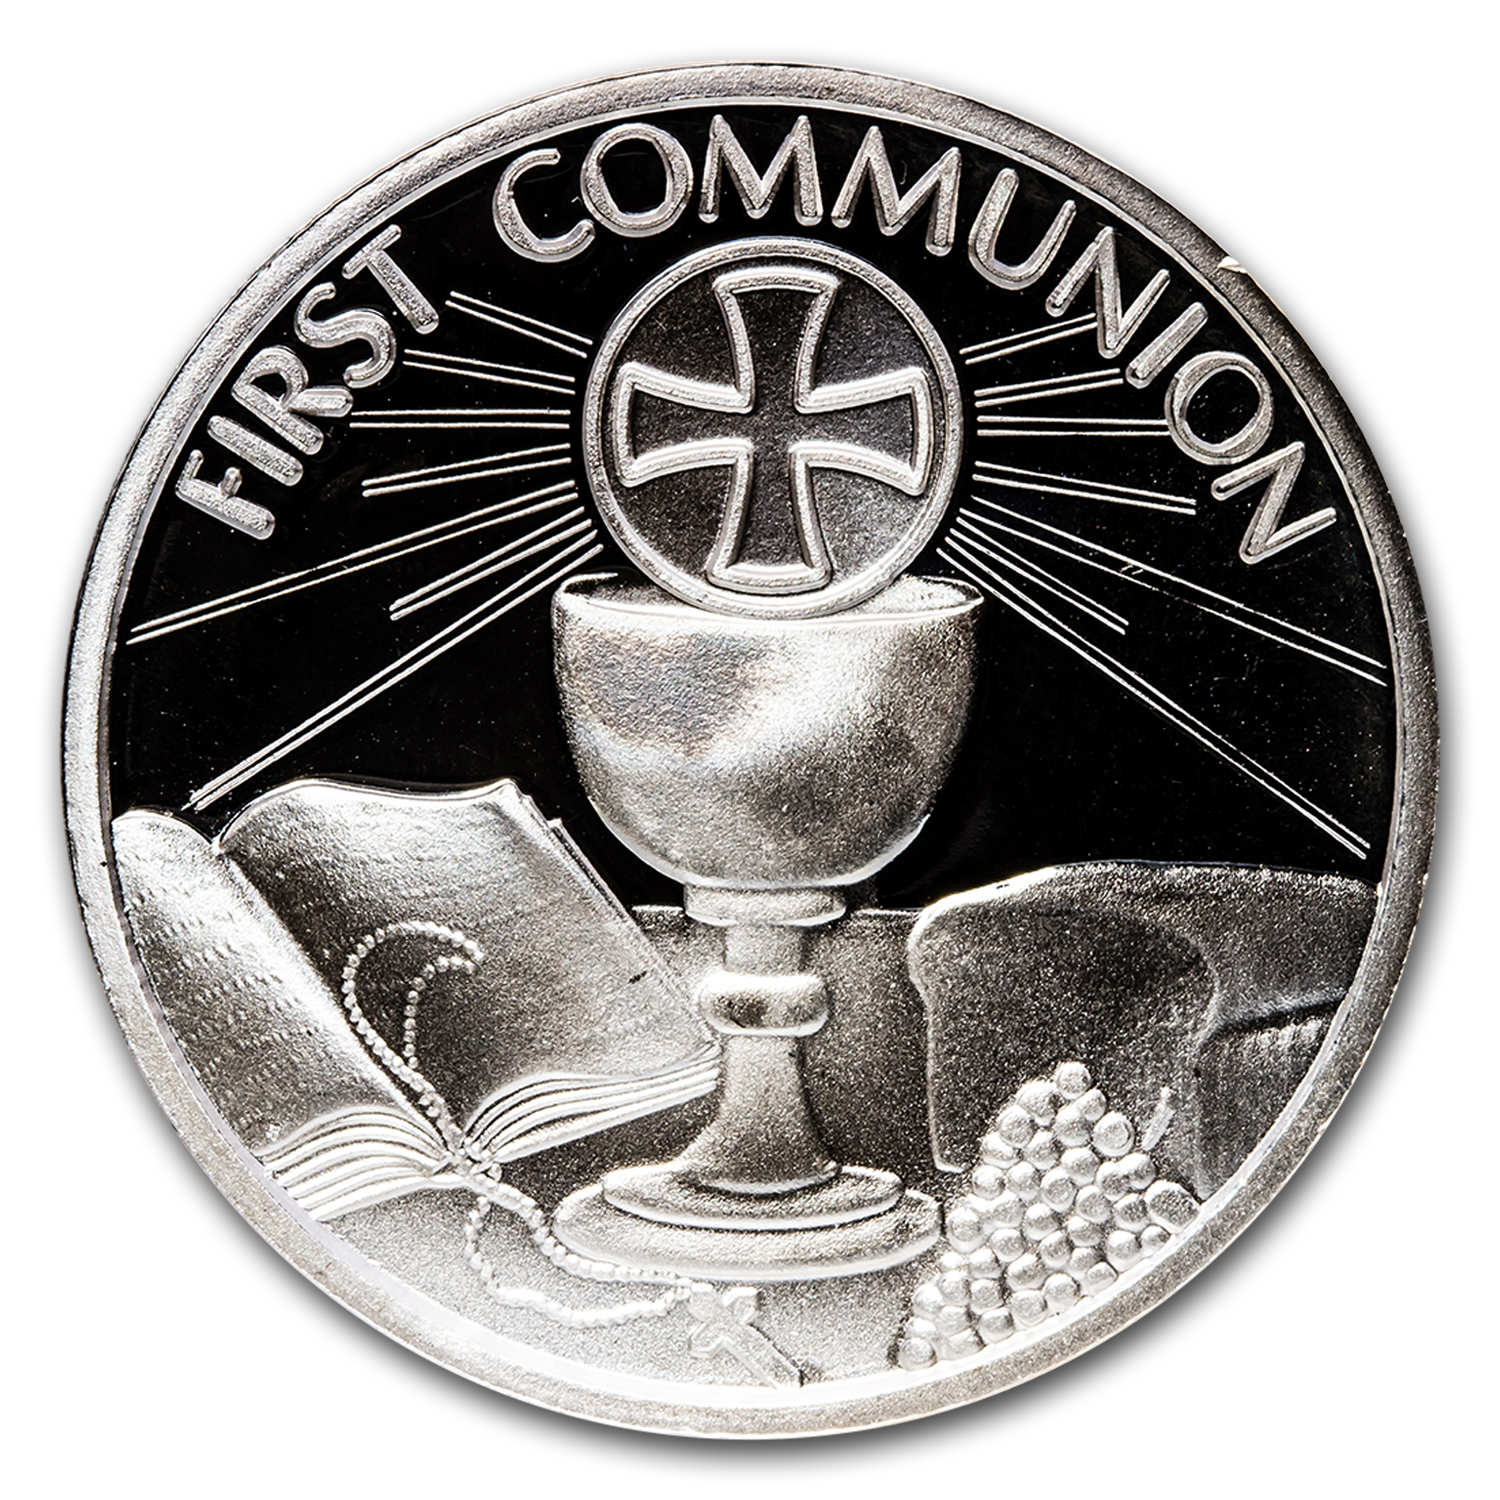 2014 1 oz Silver Rounds - Communion (w/Box & Capsule)